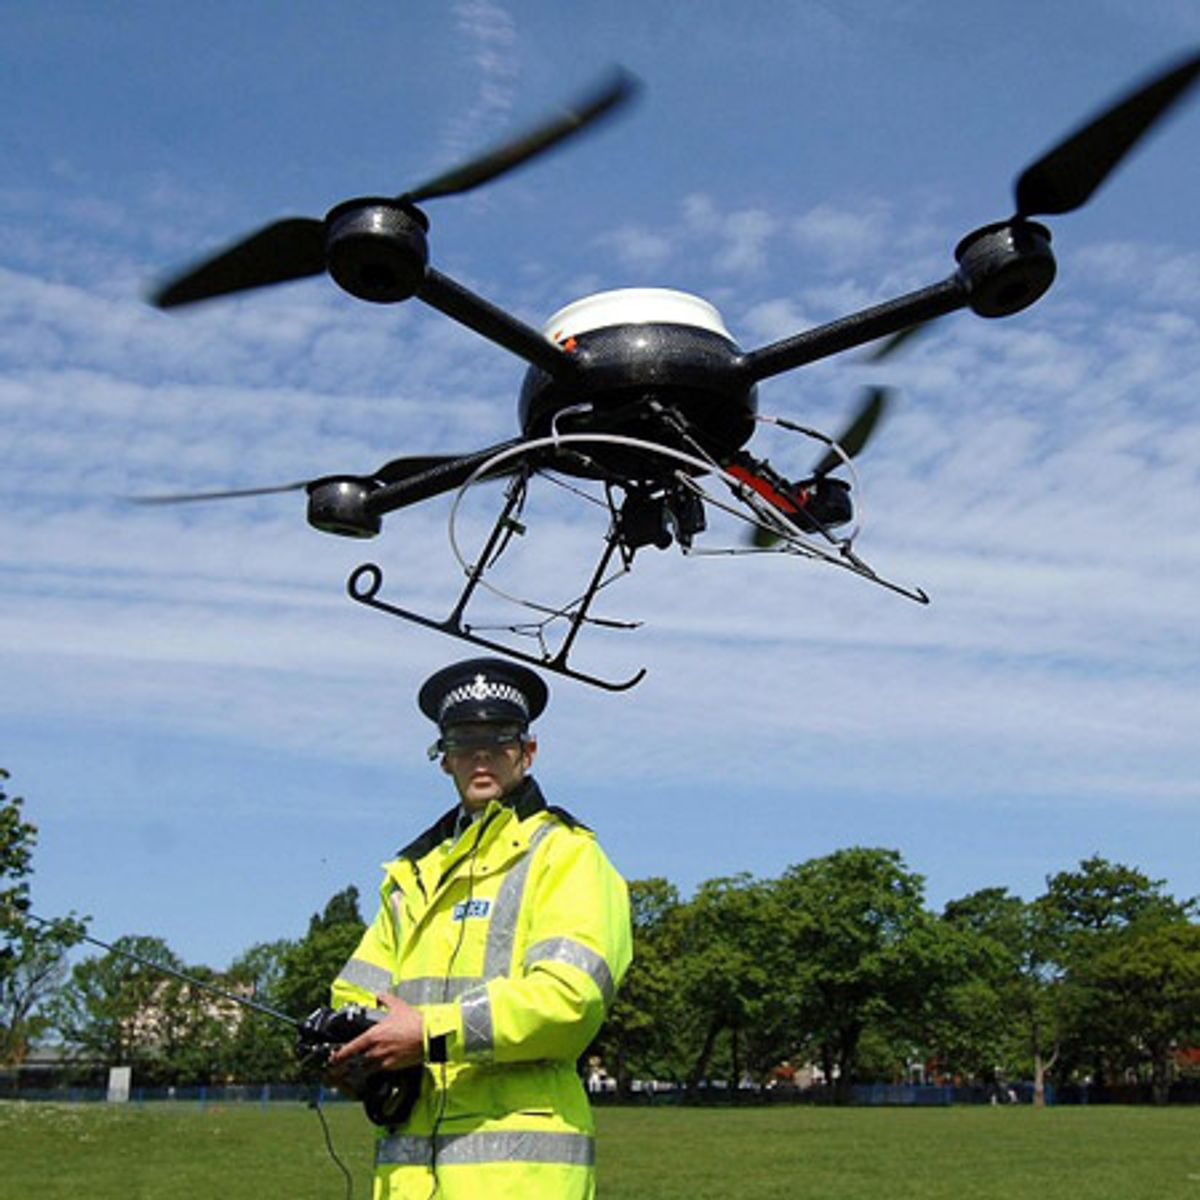 Homeland Security Wants Drones for Public Safety, Doesn't Want to Tell Public About Them